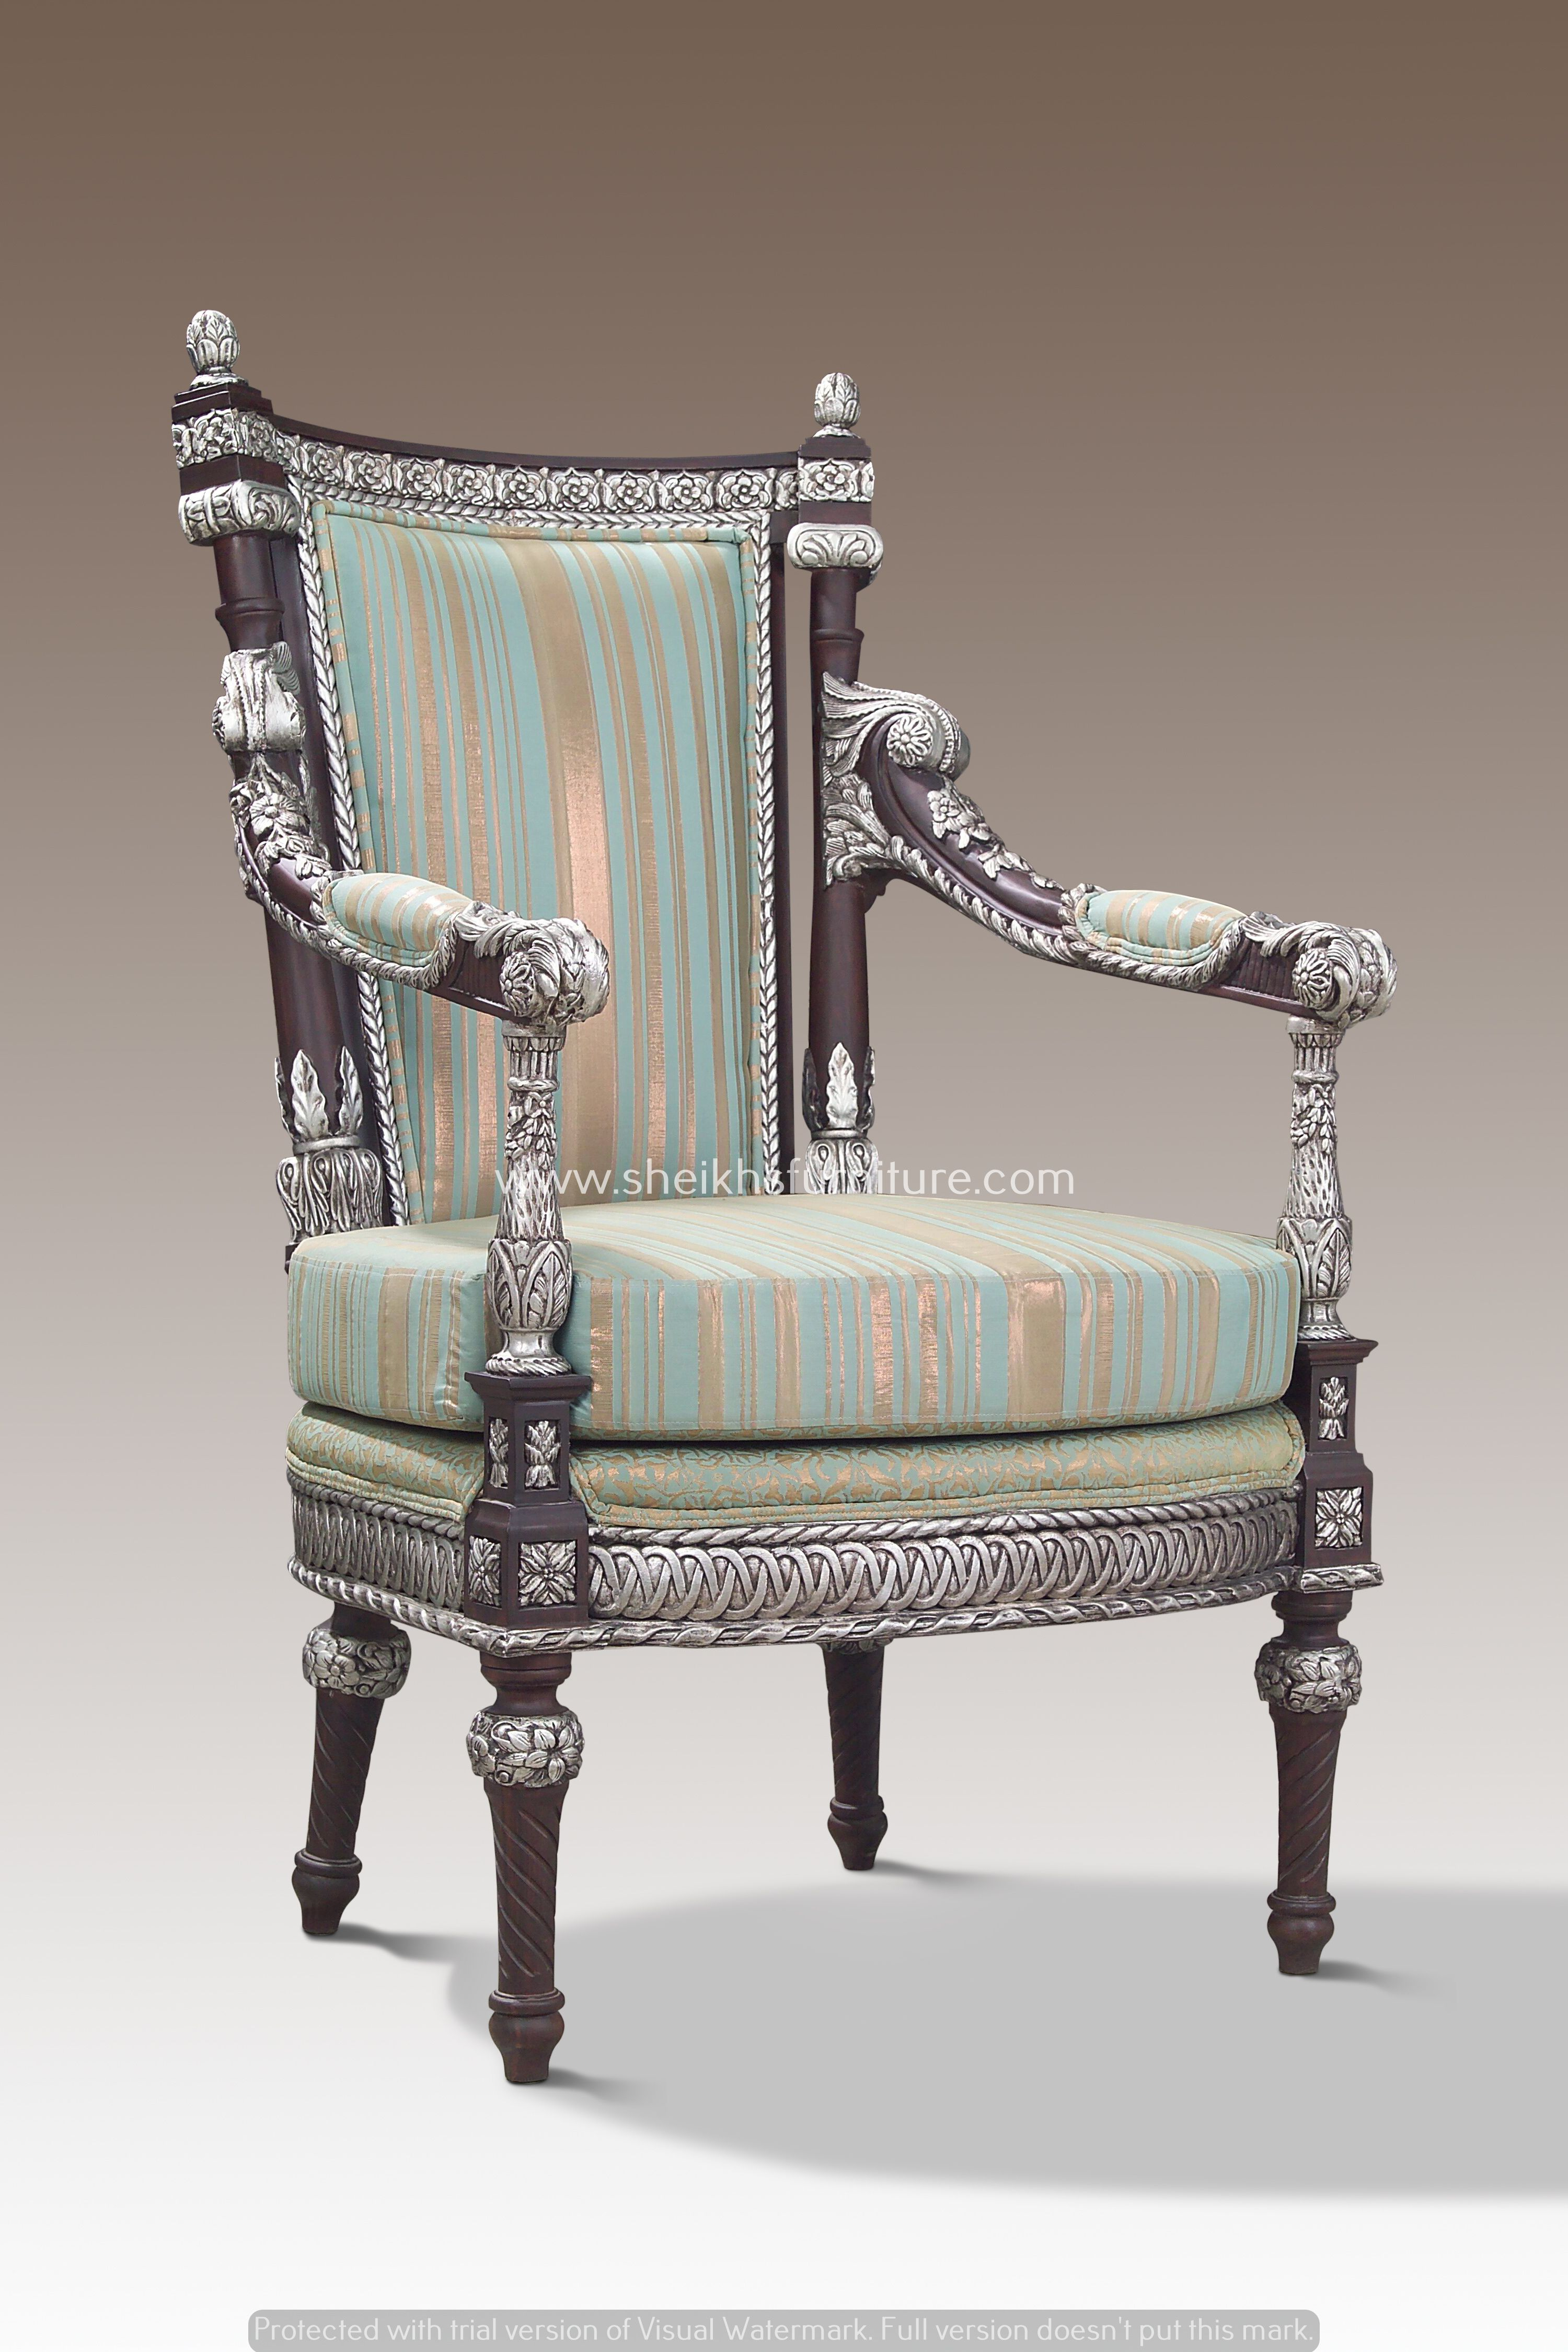 This is our solid rosewood classic bedroom chair set This chair